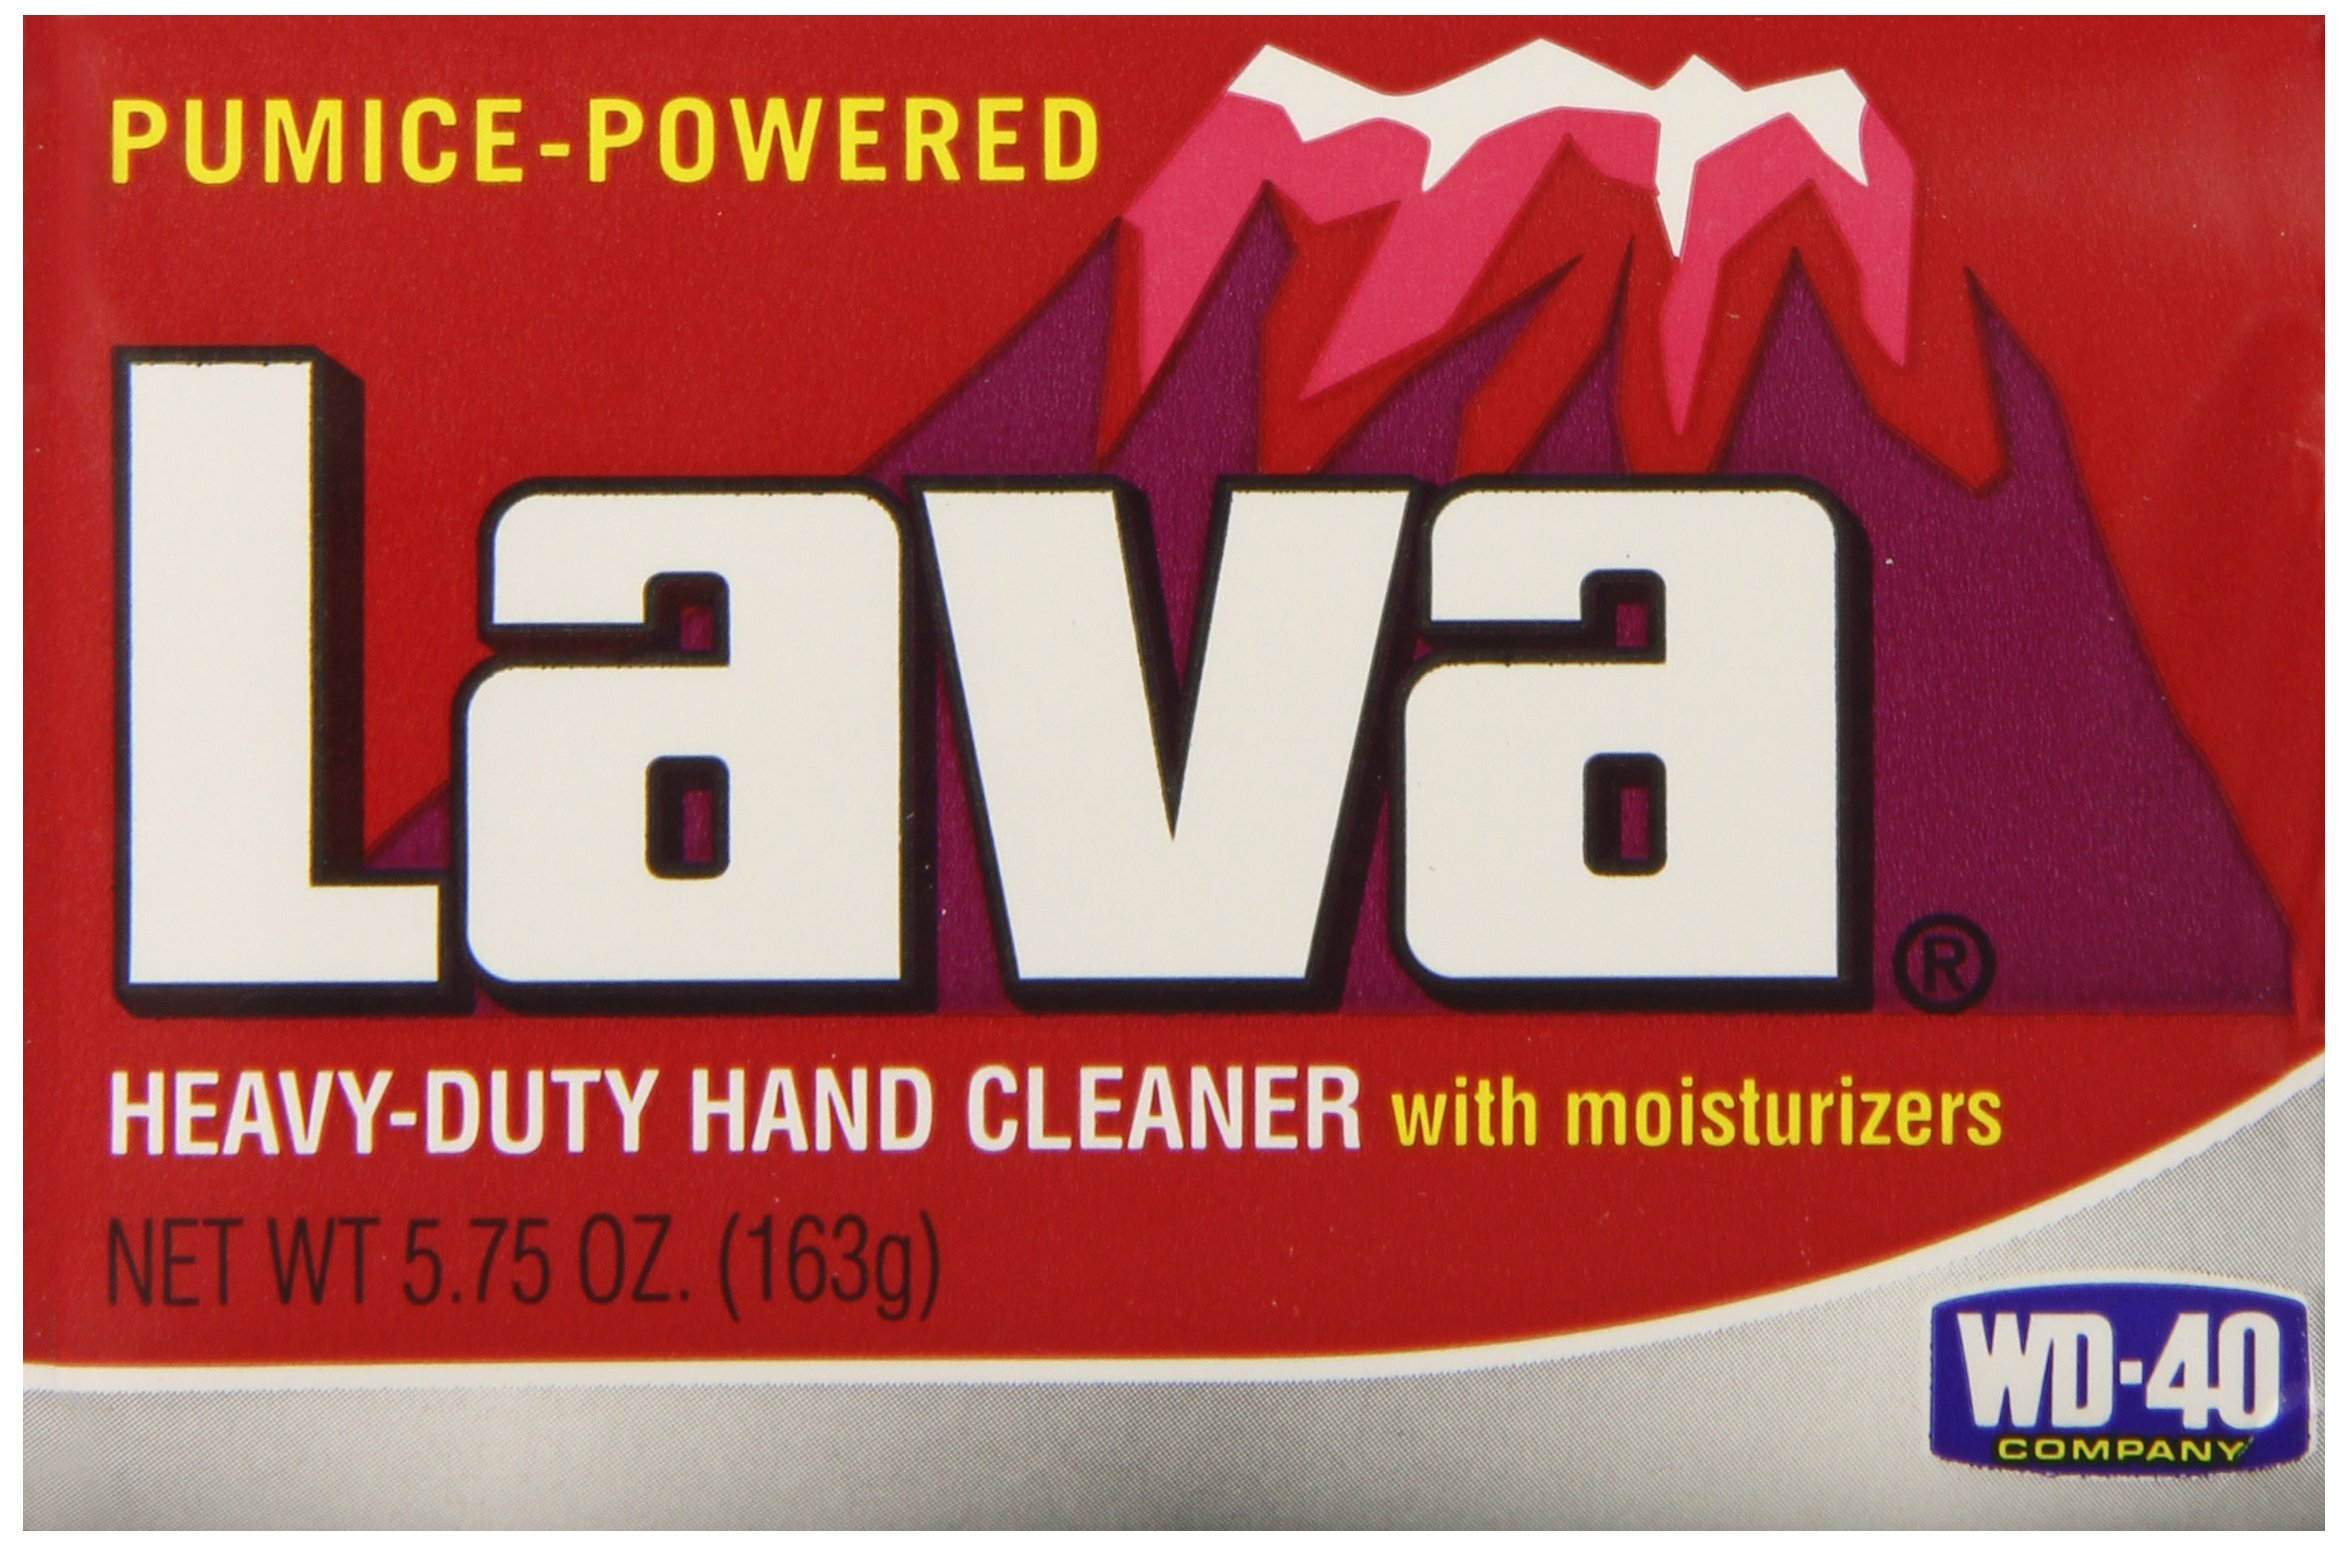 Lava Heavy Duty Hand Cleaner with moisturizers, 5.75 oz, Pack of 3 by Lava